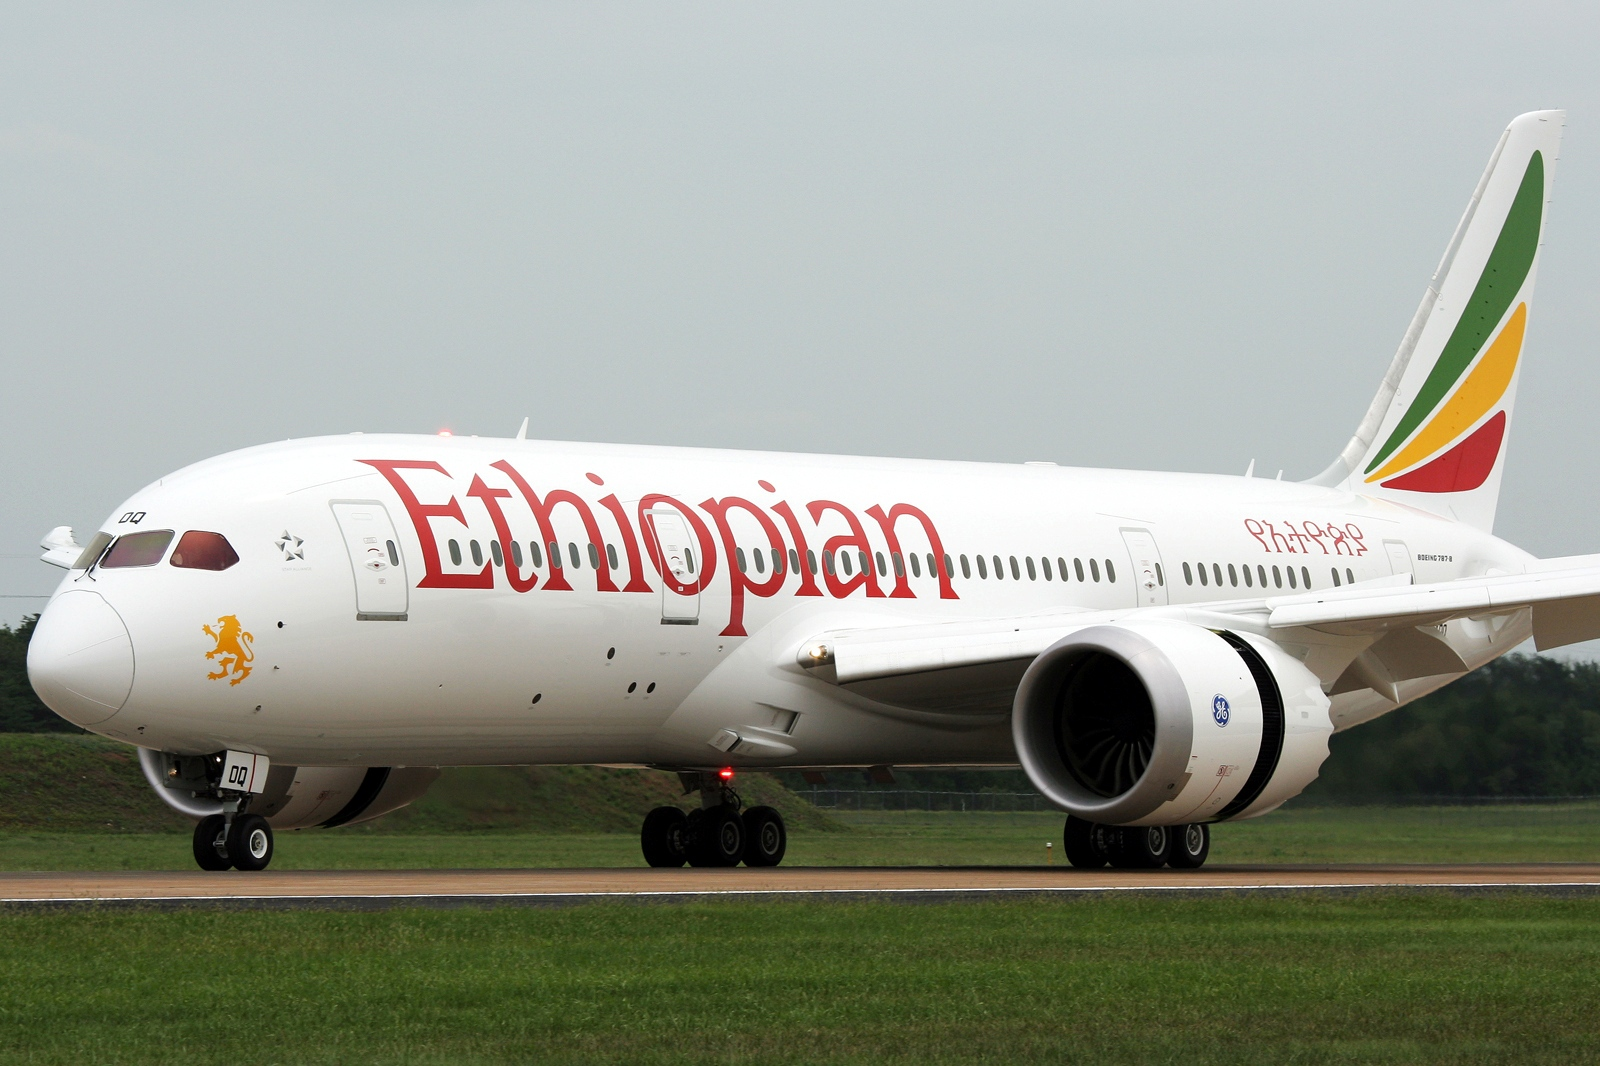 Ethiopian Airlines plans to build $5 billion airport